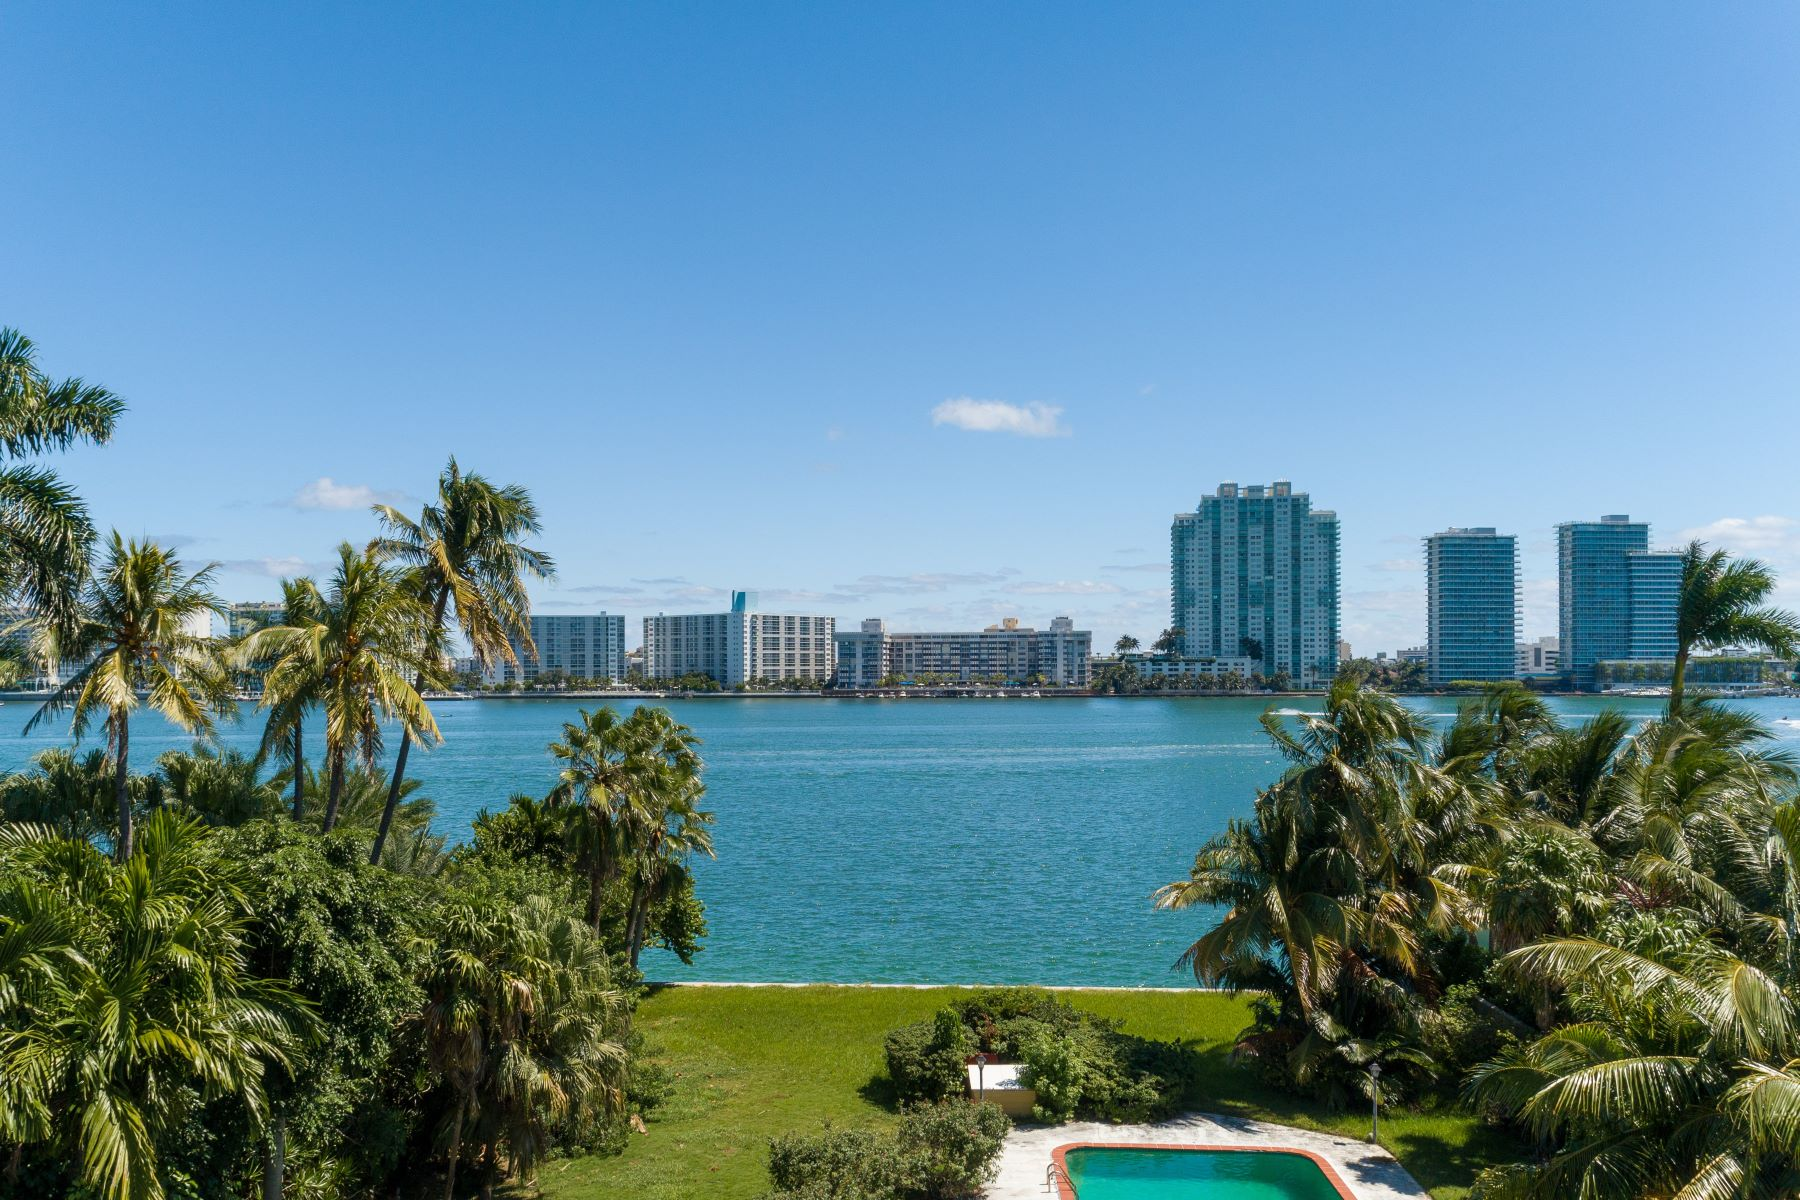 Single Family Homes for Sale at 34 Star Island Dr Miami Beach, Florida 33139 United States